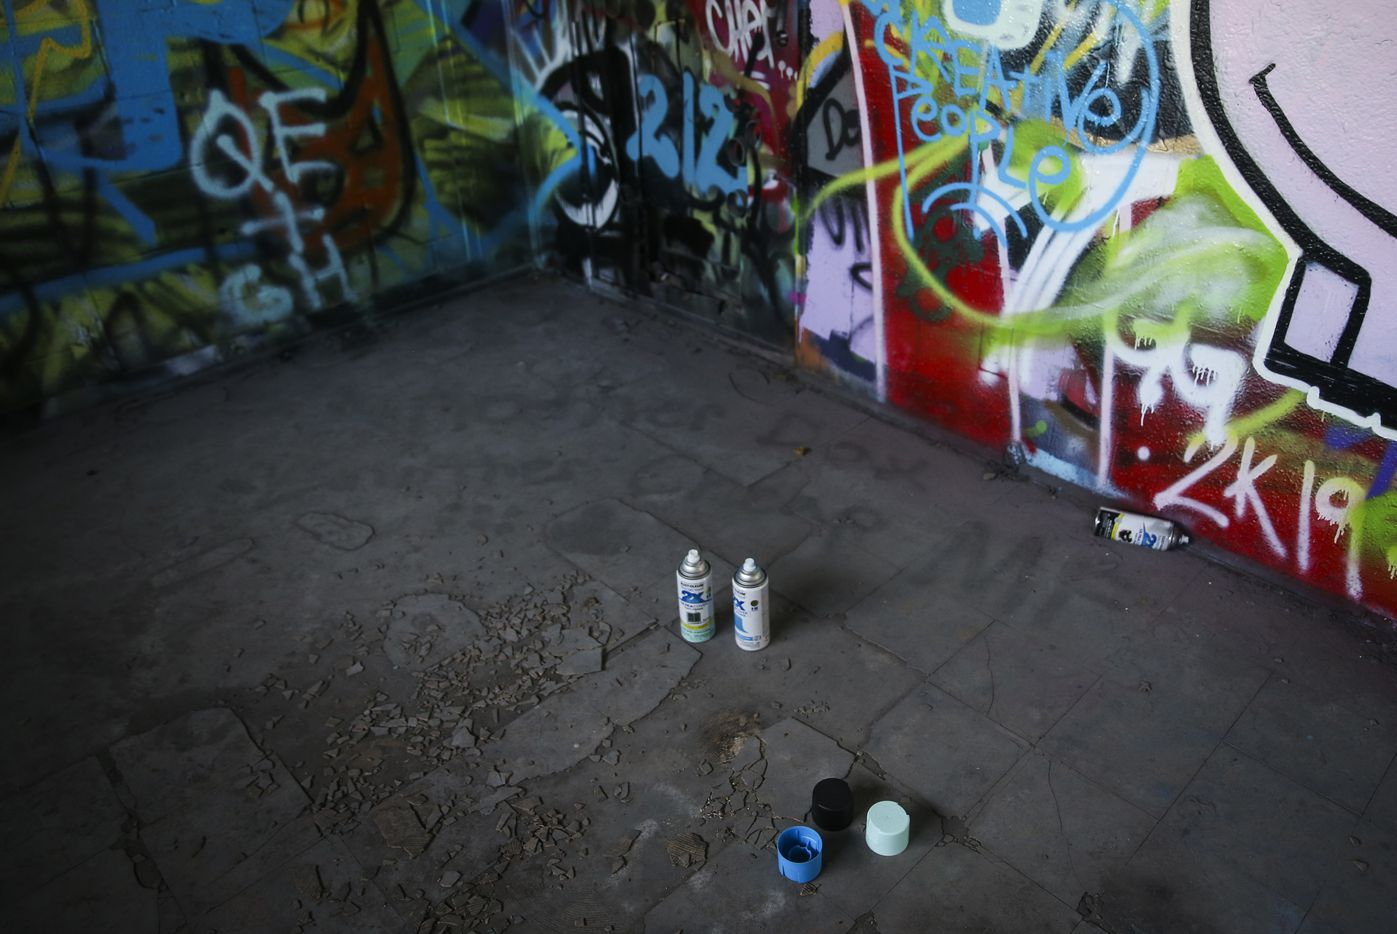 Remnants from graffiti art are seen at Fabrication Yard in West Dallas.